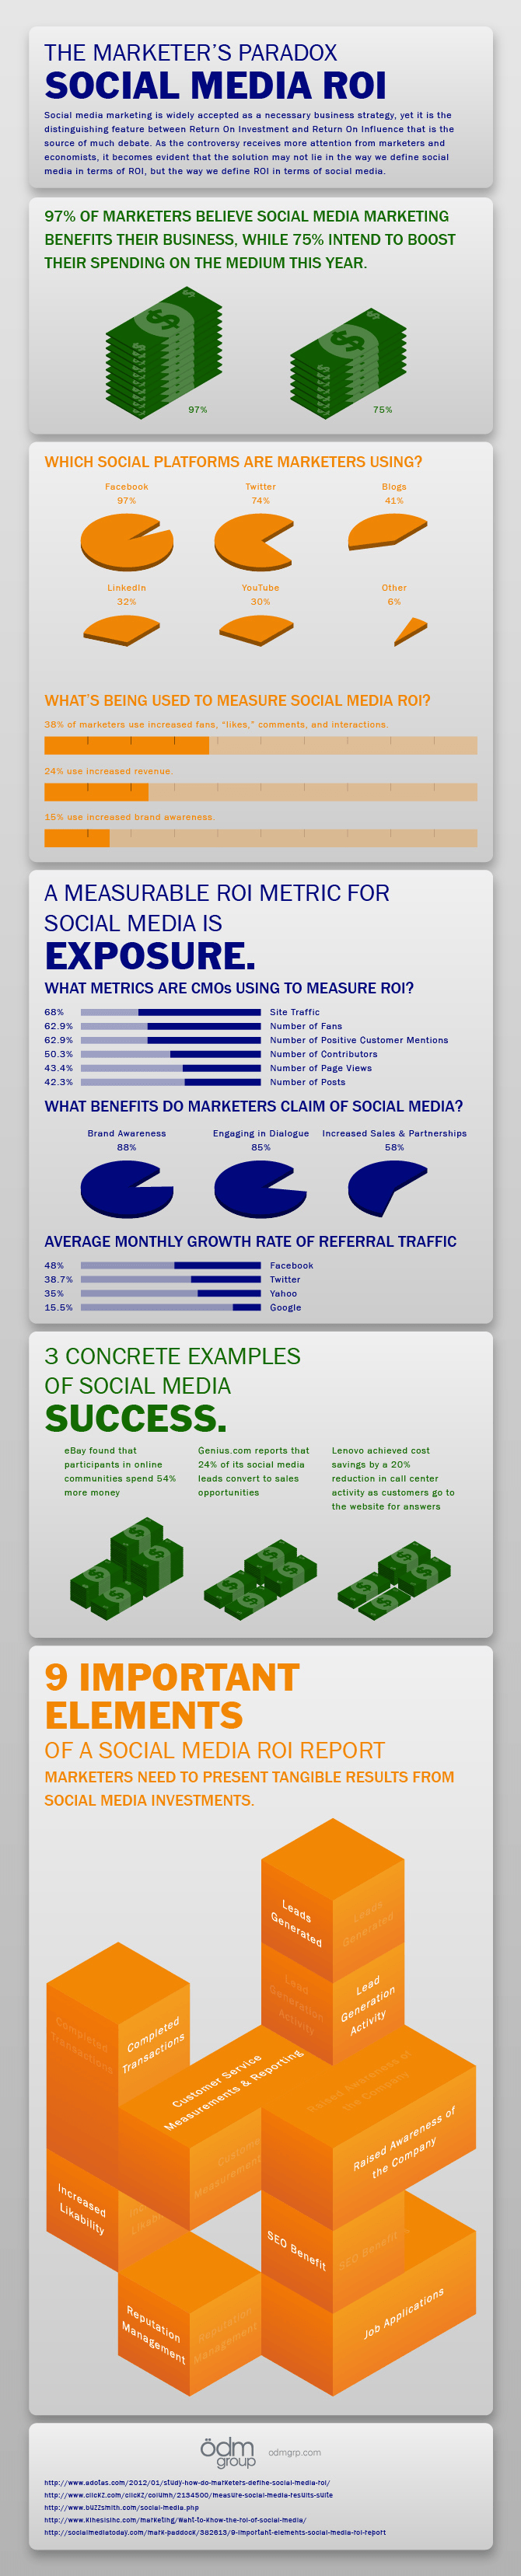 Social Media ROI Infographic - The Marketers Paradox